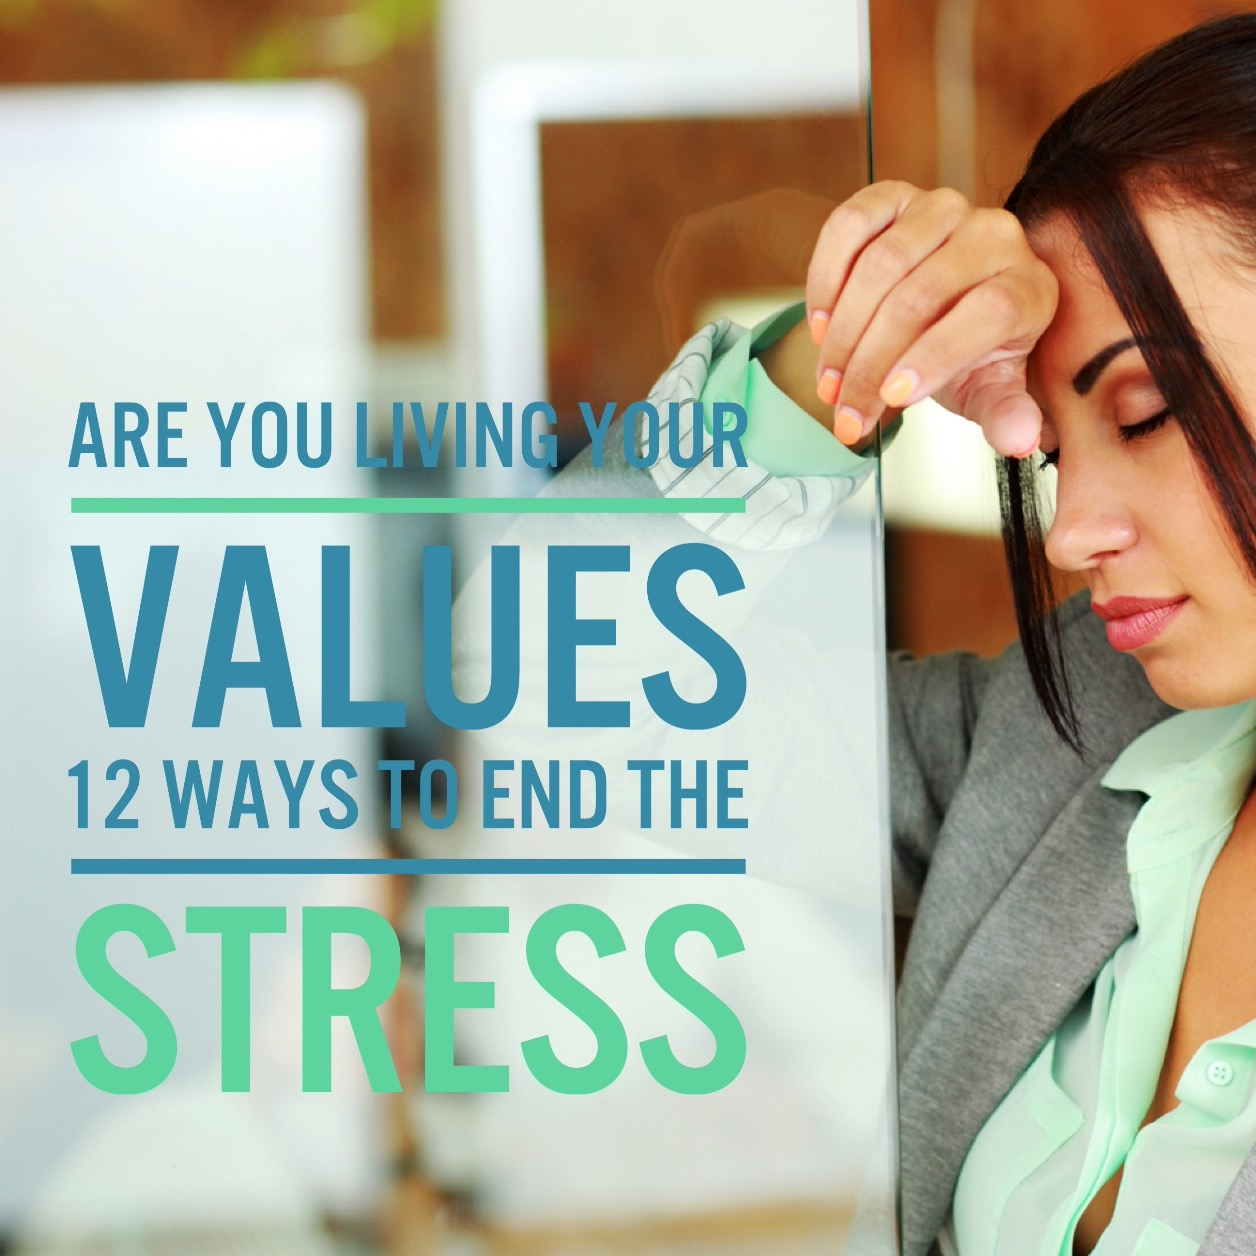 12 Simple Ways For Christian Women To End Stress